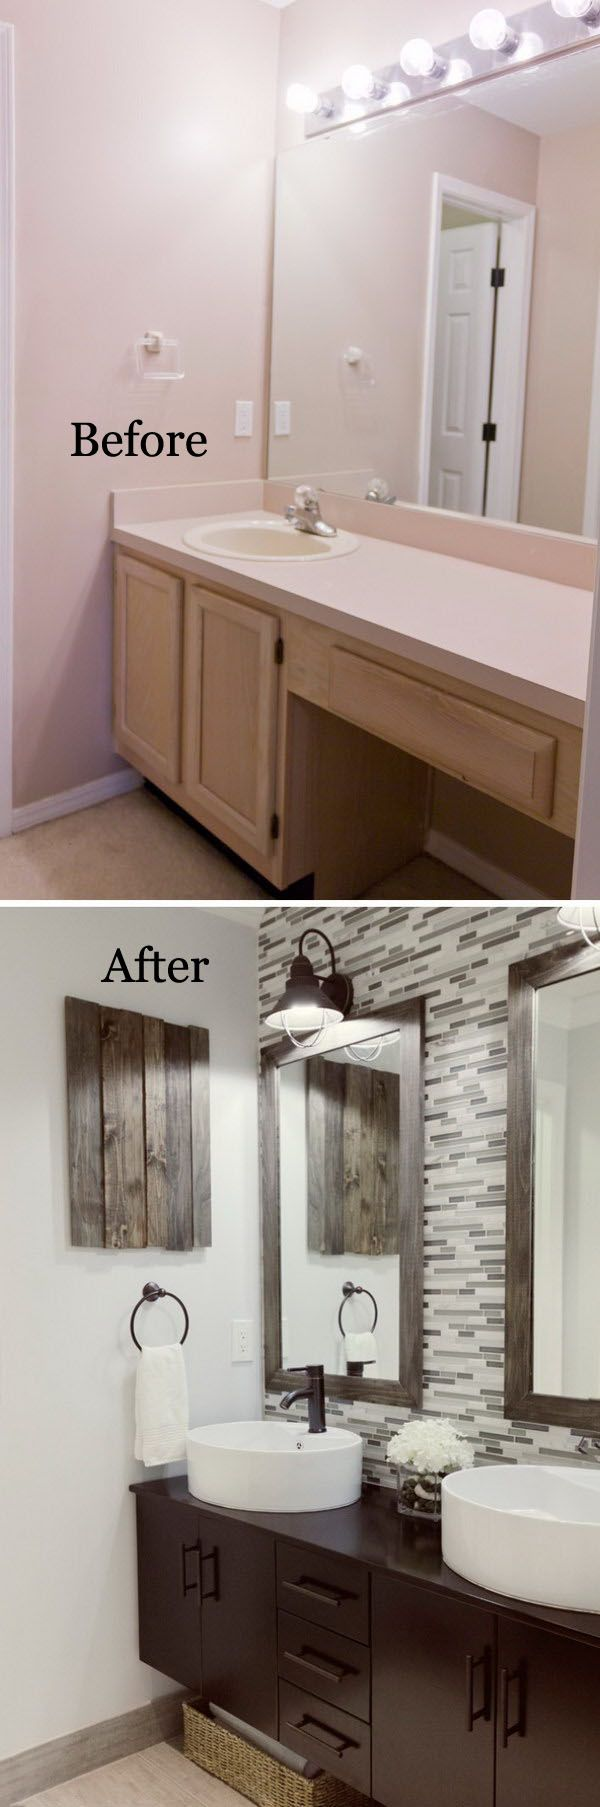 100 Warm Bathroom Ideas In 2020 Bathroom Decor Bathrooms Remodel Warm Bathroom